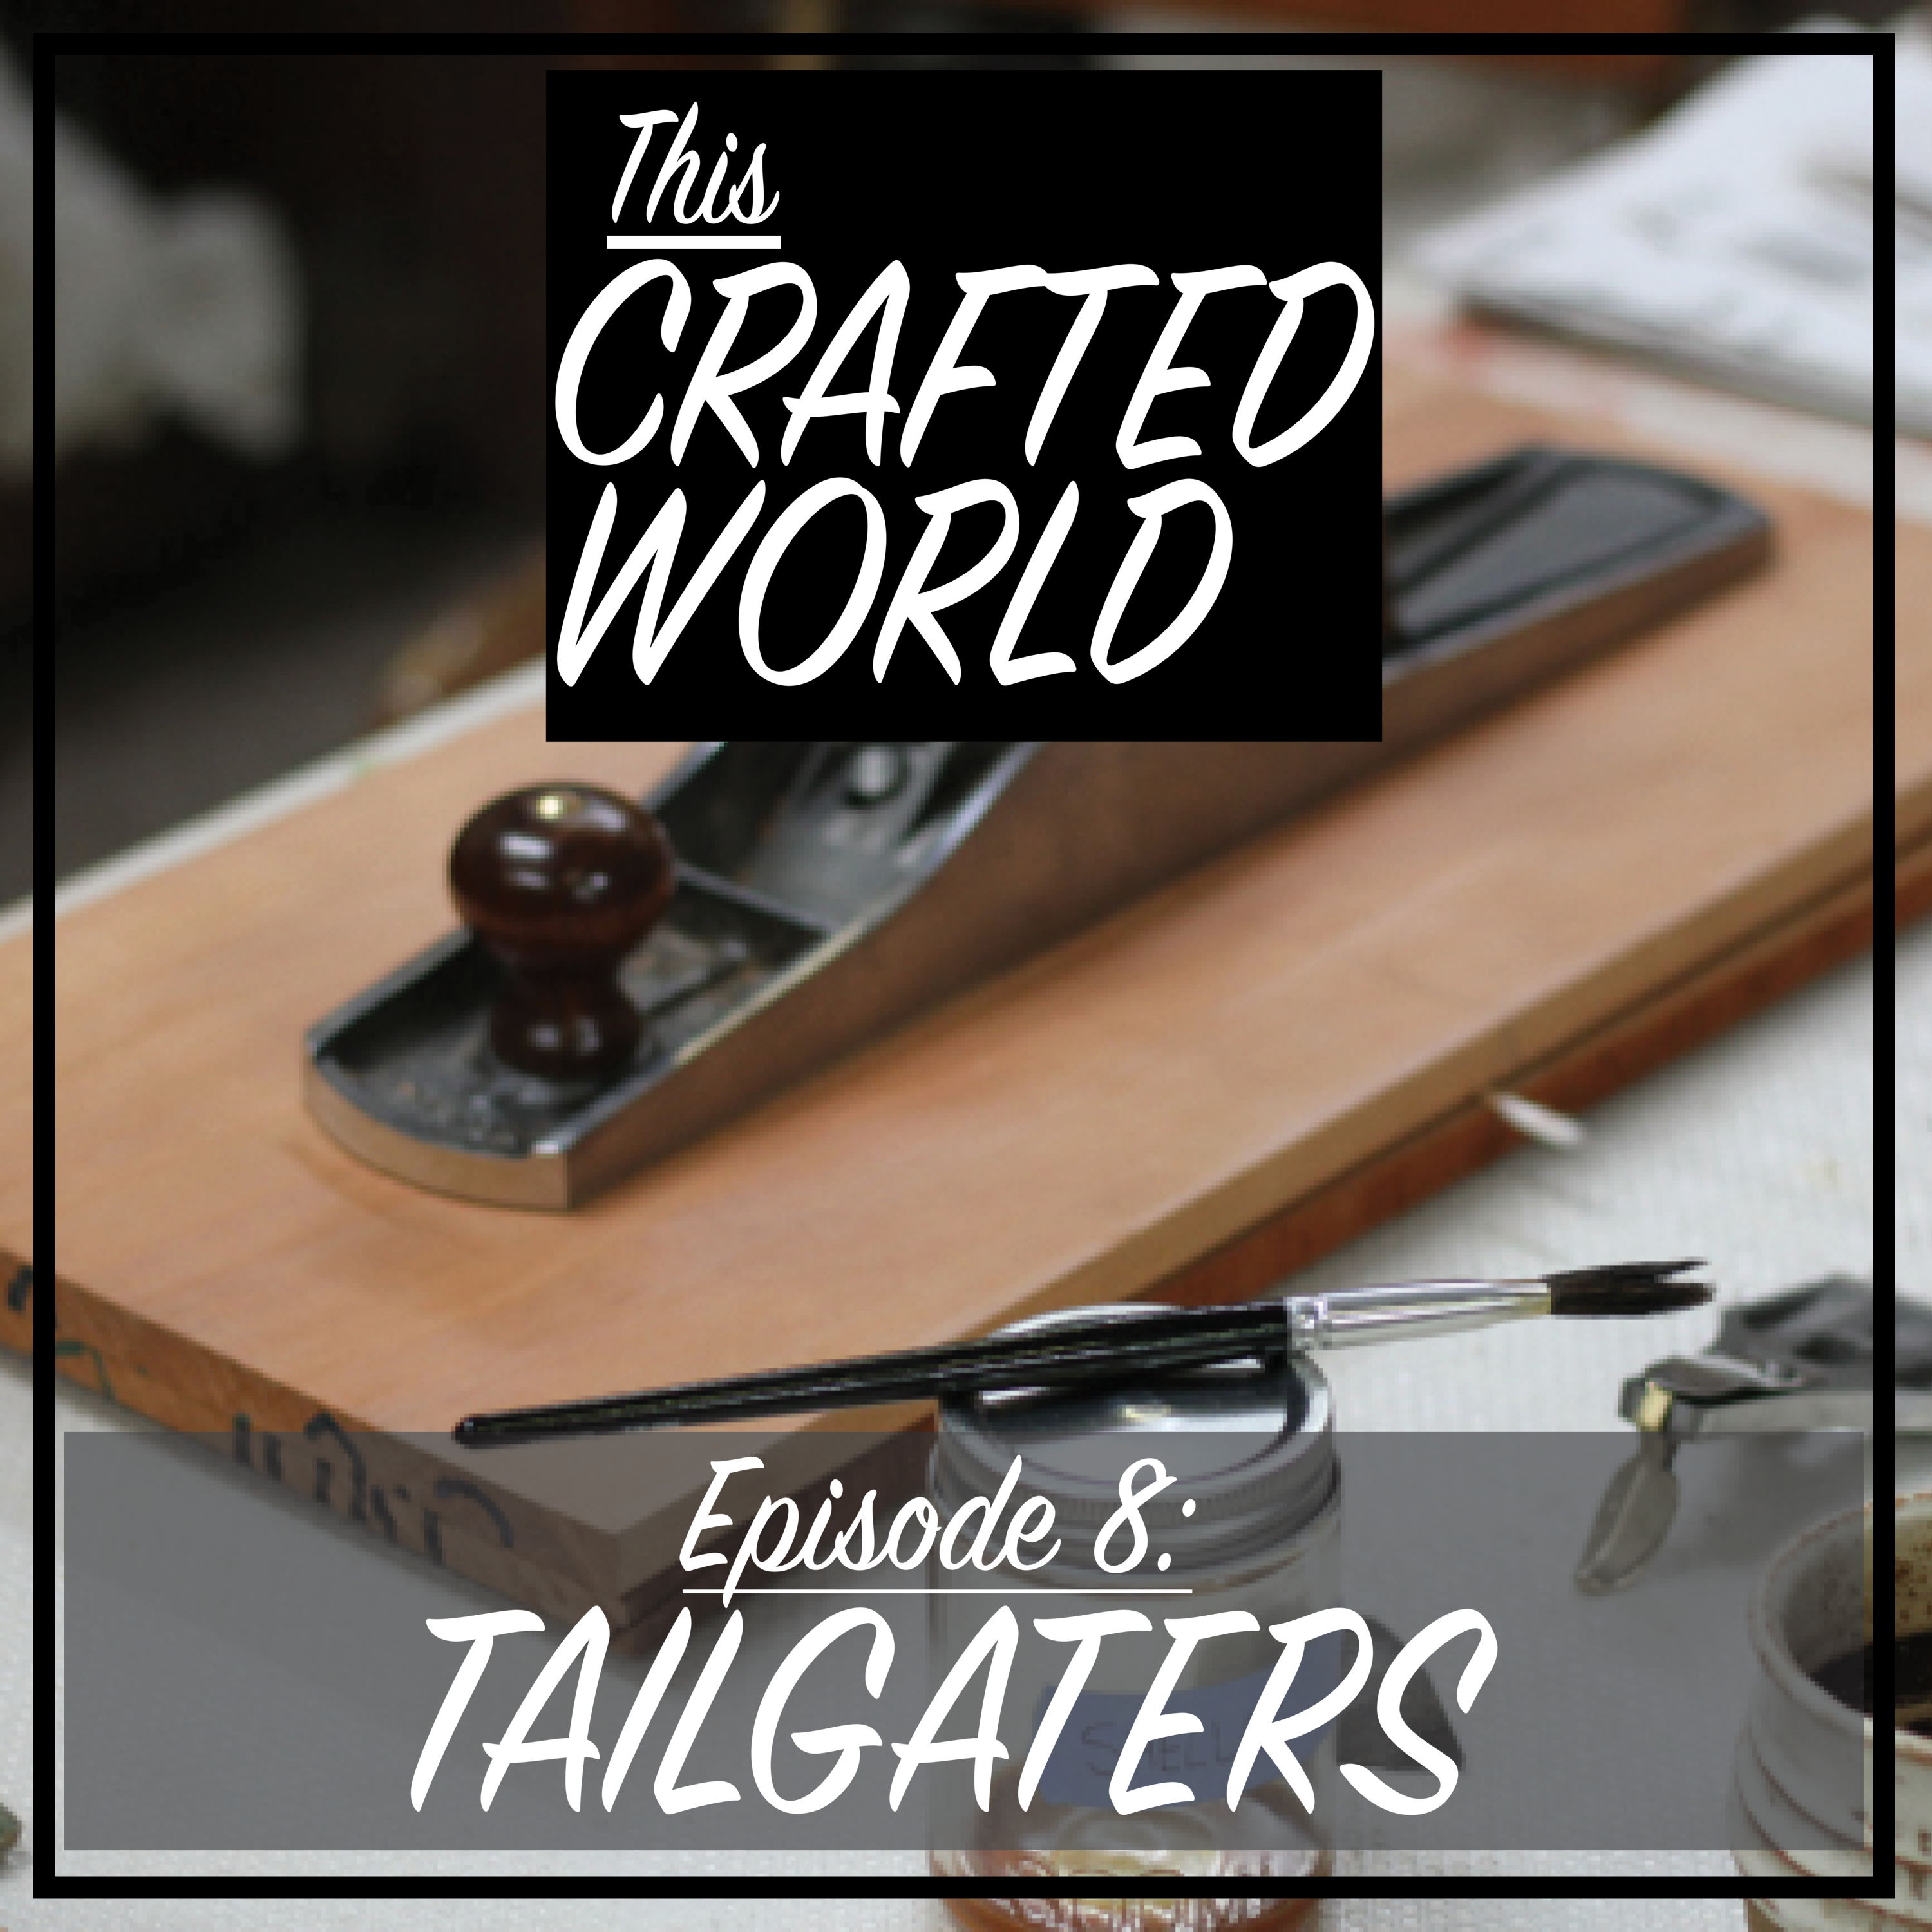 Episode 8: Tailgaters